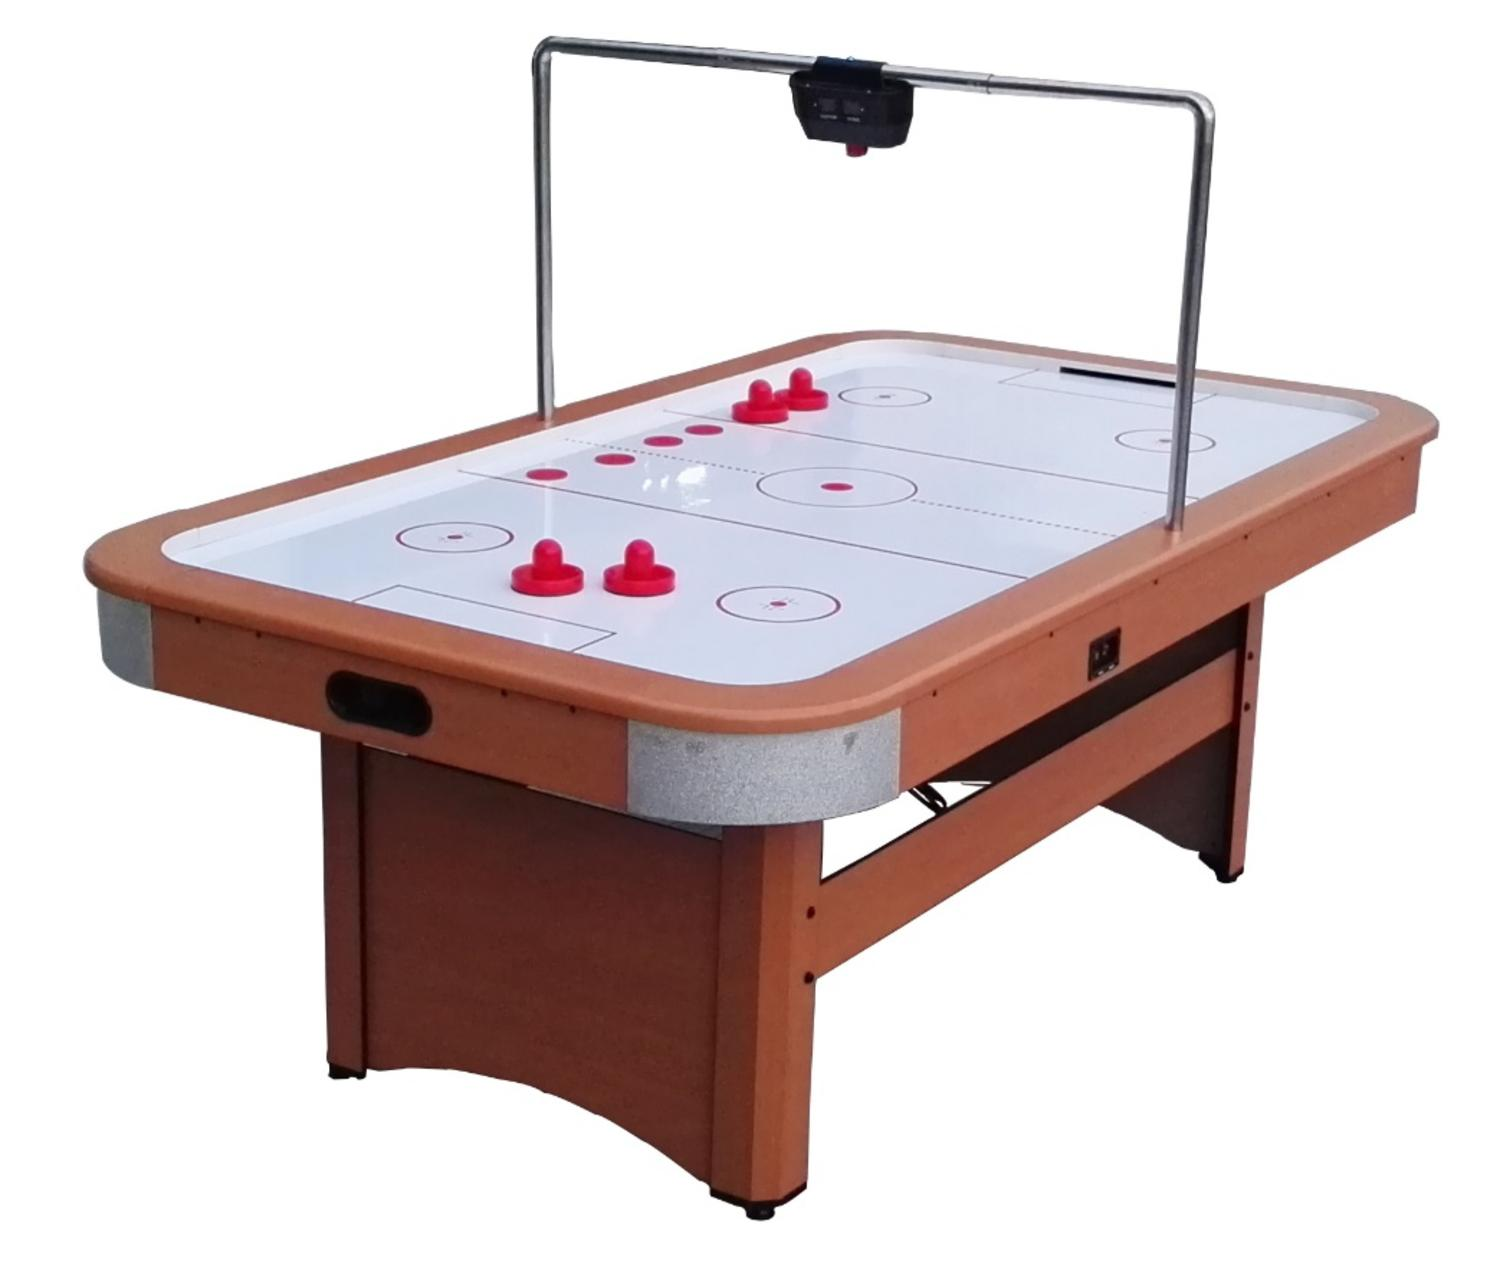 7' x 4' Recreational Brown White and Red Air Hockey Game Table by Pool Central